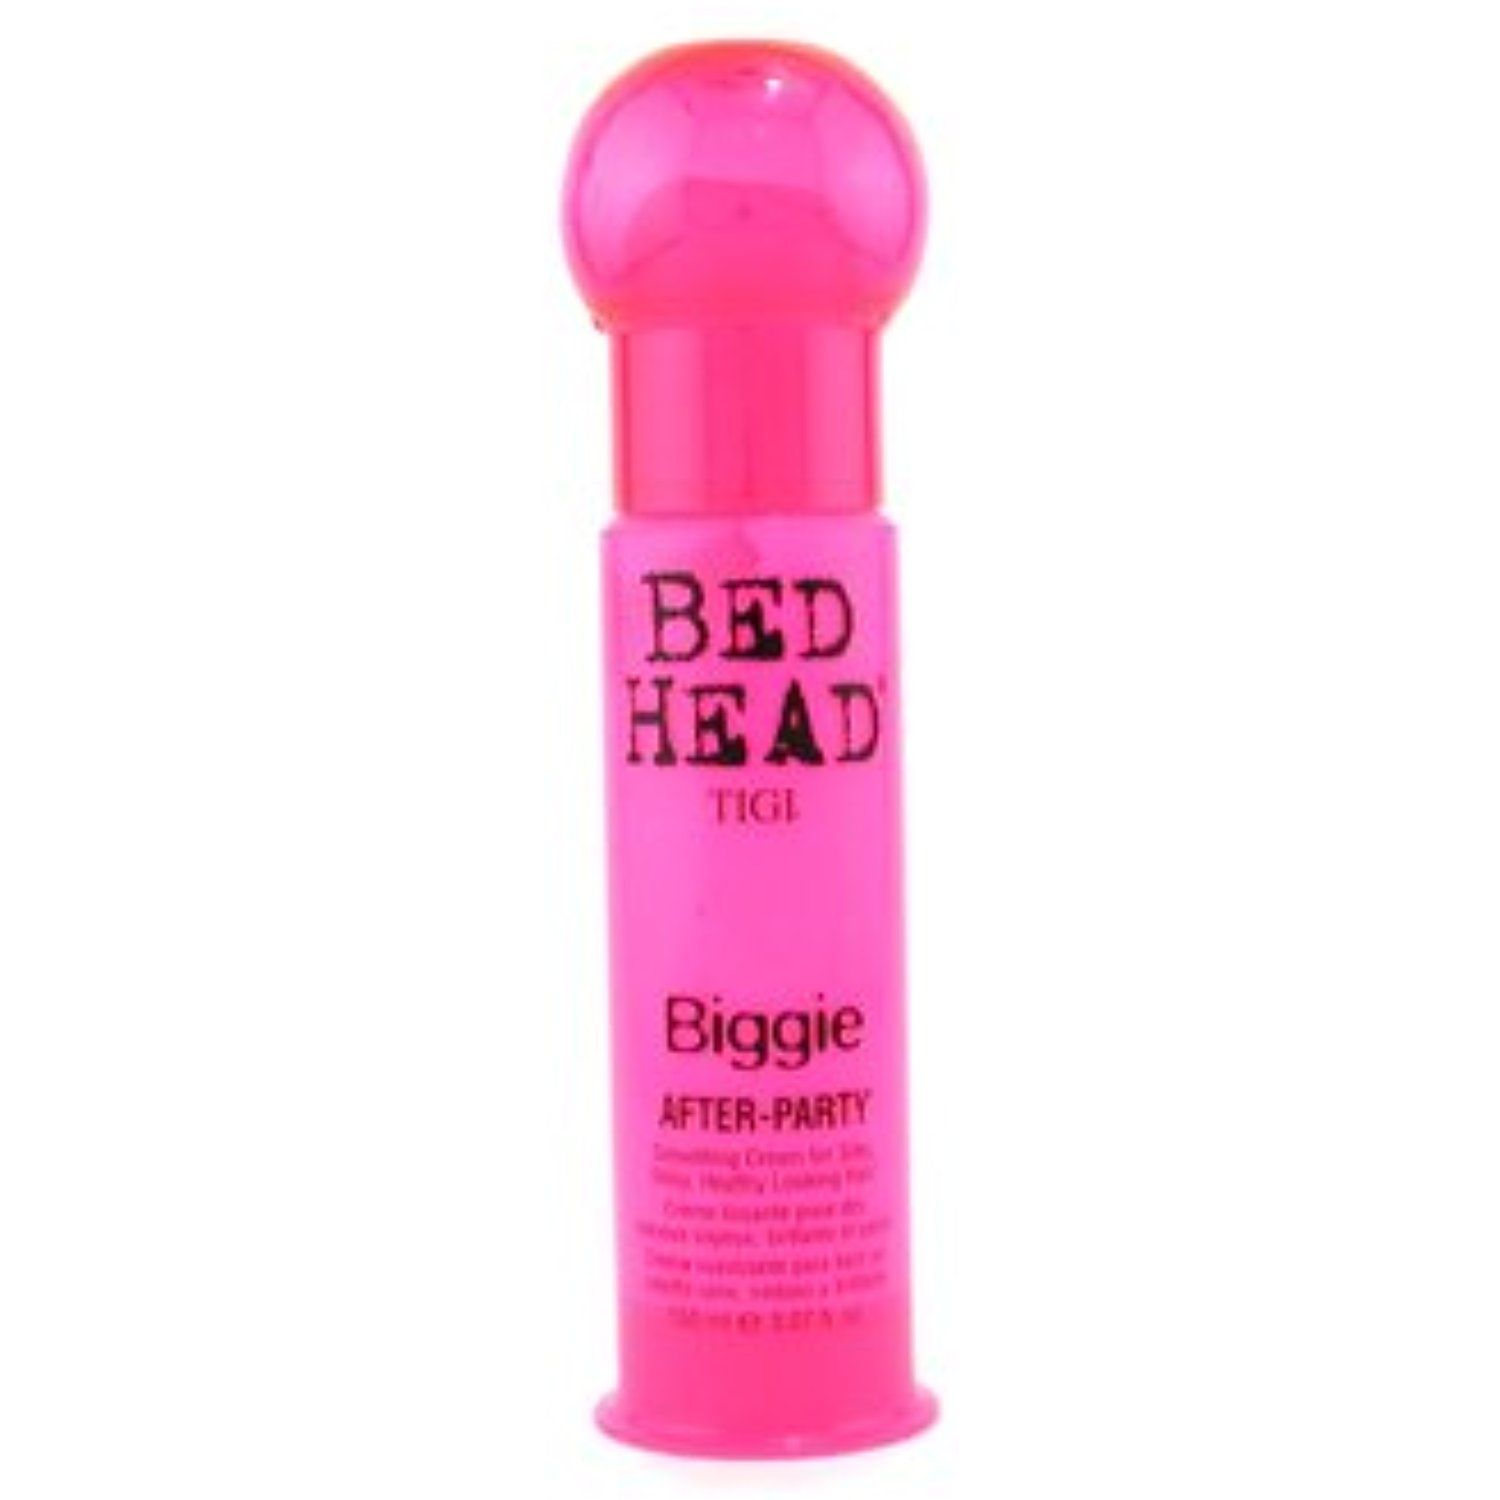 Tigi Bed Head Biggie After Party Smoothing Cream For Silky Shiny Healthy Looking Hair 150ml 5 07oz Click Image To Revi Smoothing Cream Bed Head Tigi